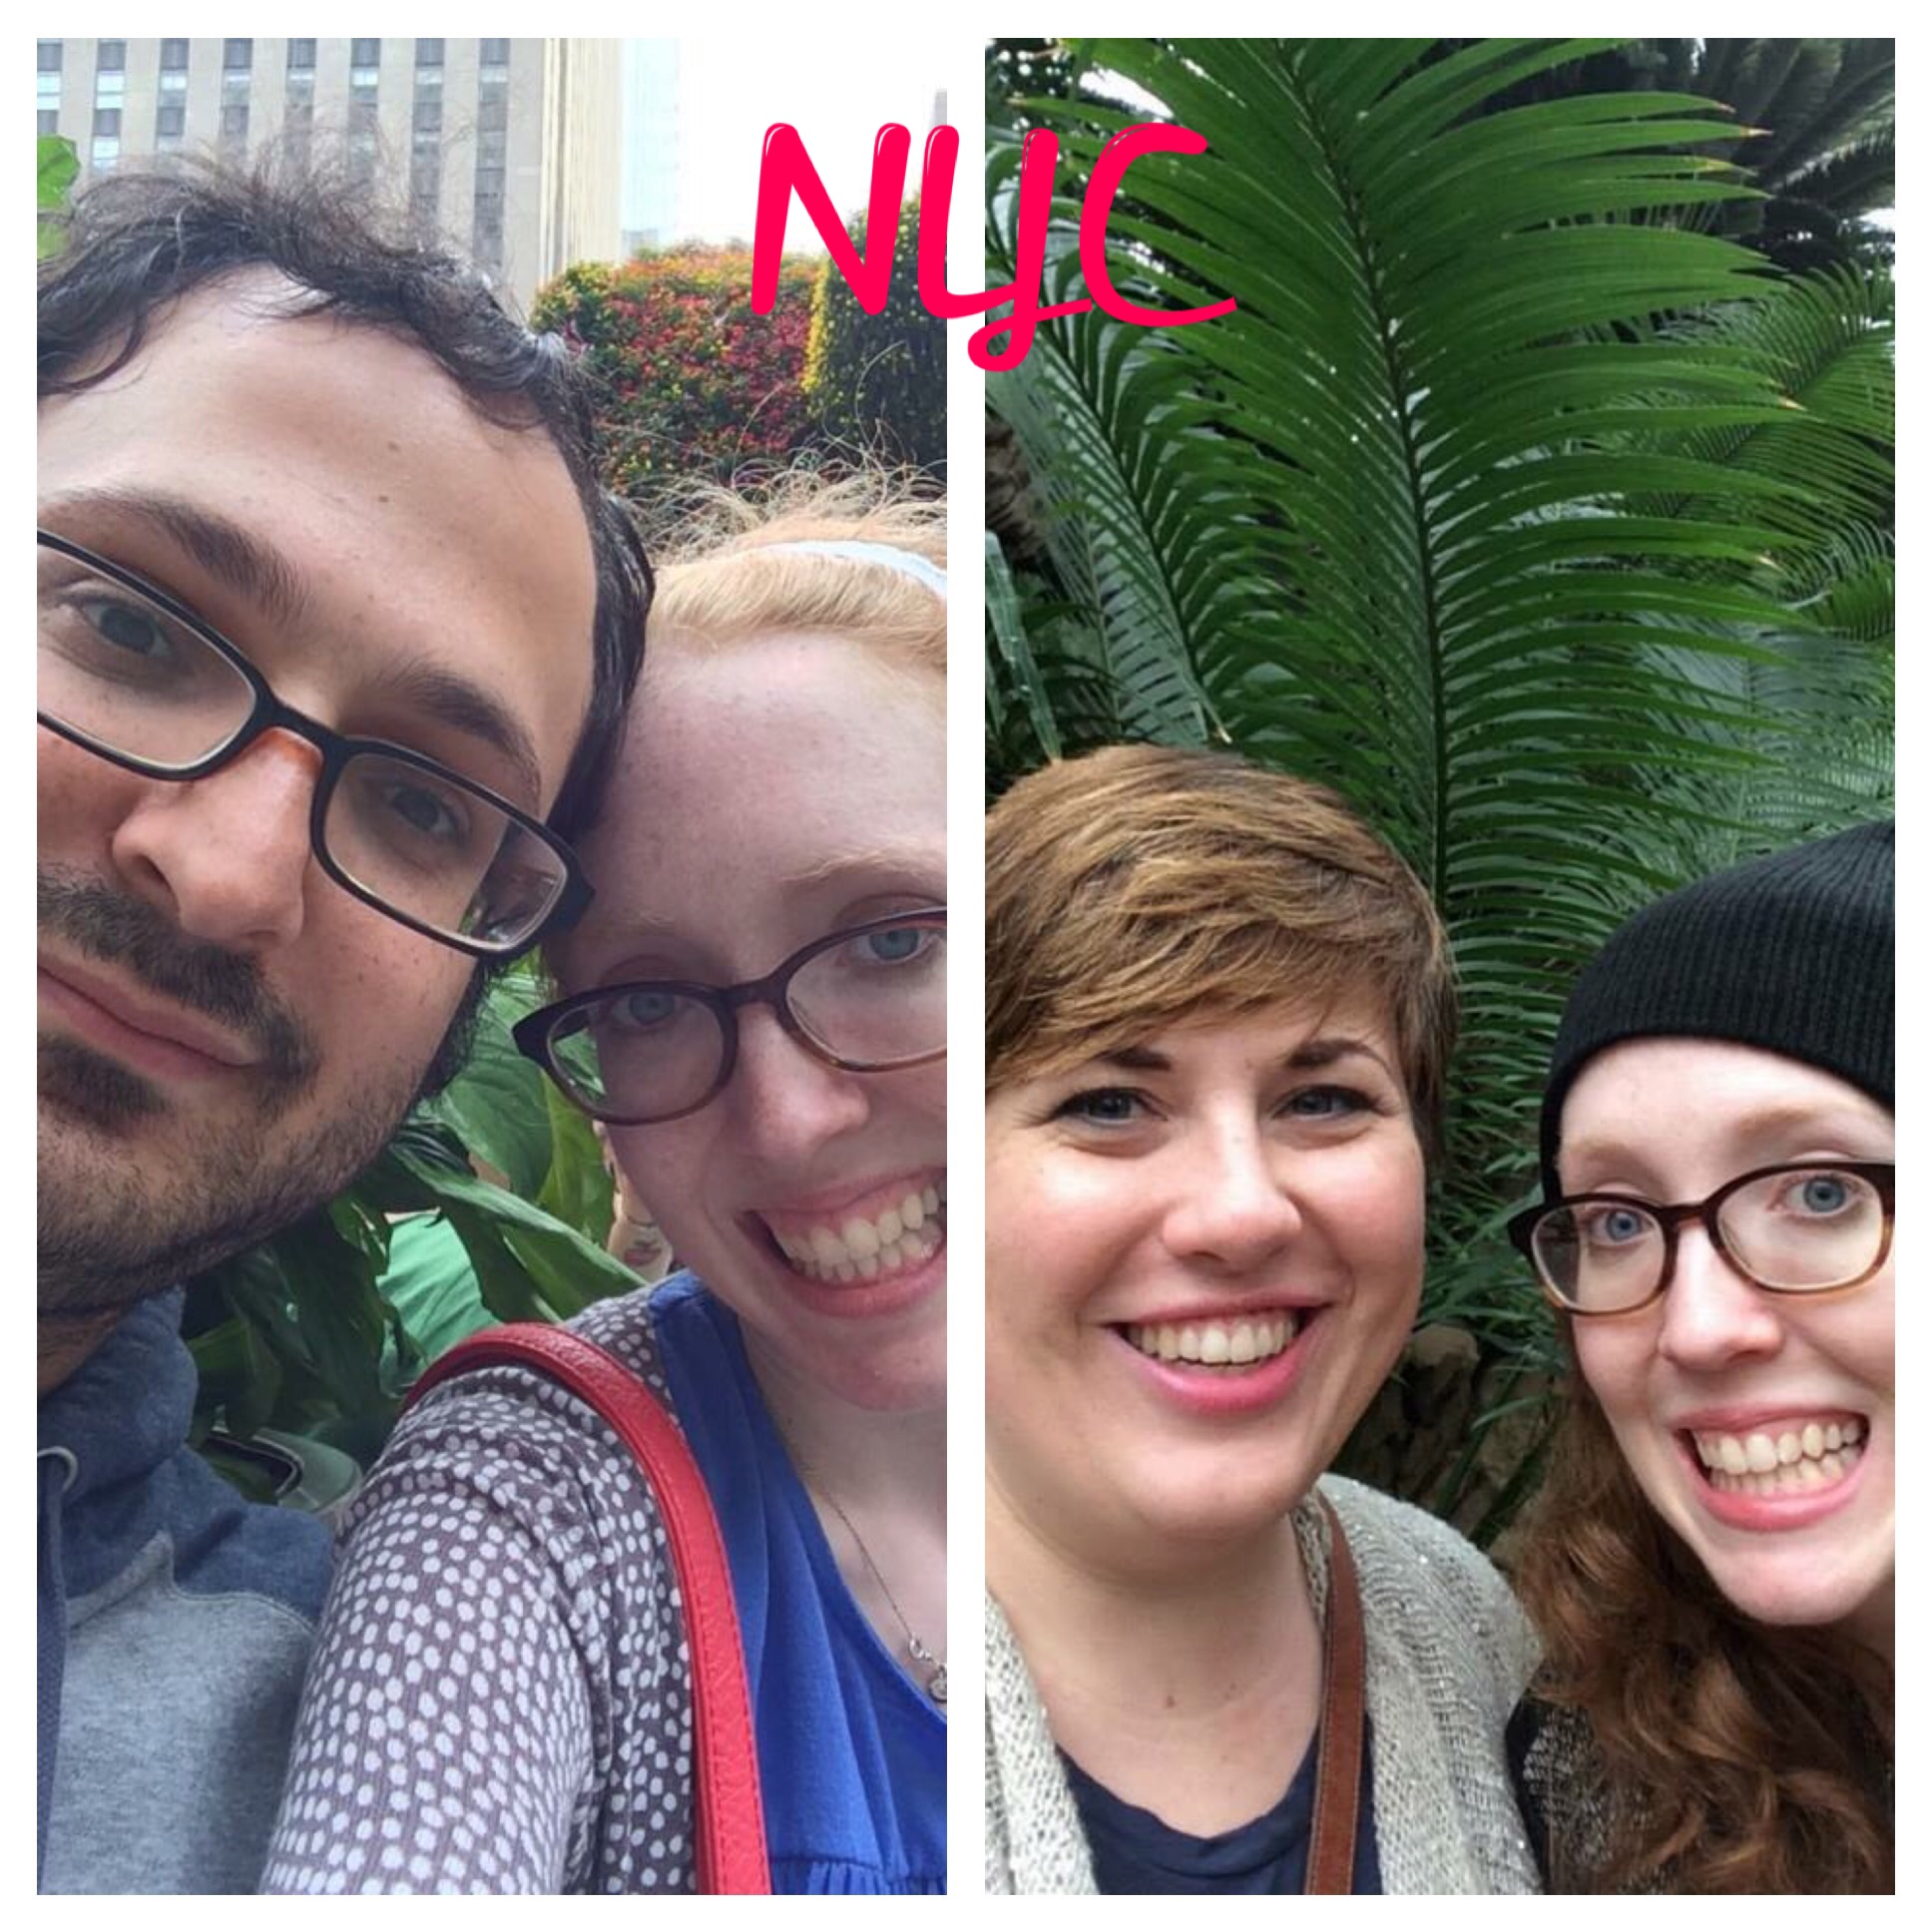 August 2014 anniversary trip with the bf | January 2015 at the Brooklyn Botanic Garden with my galpal Timmi